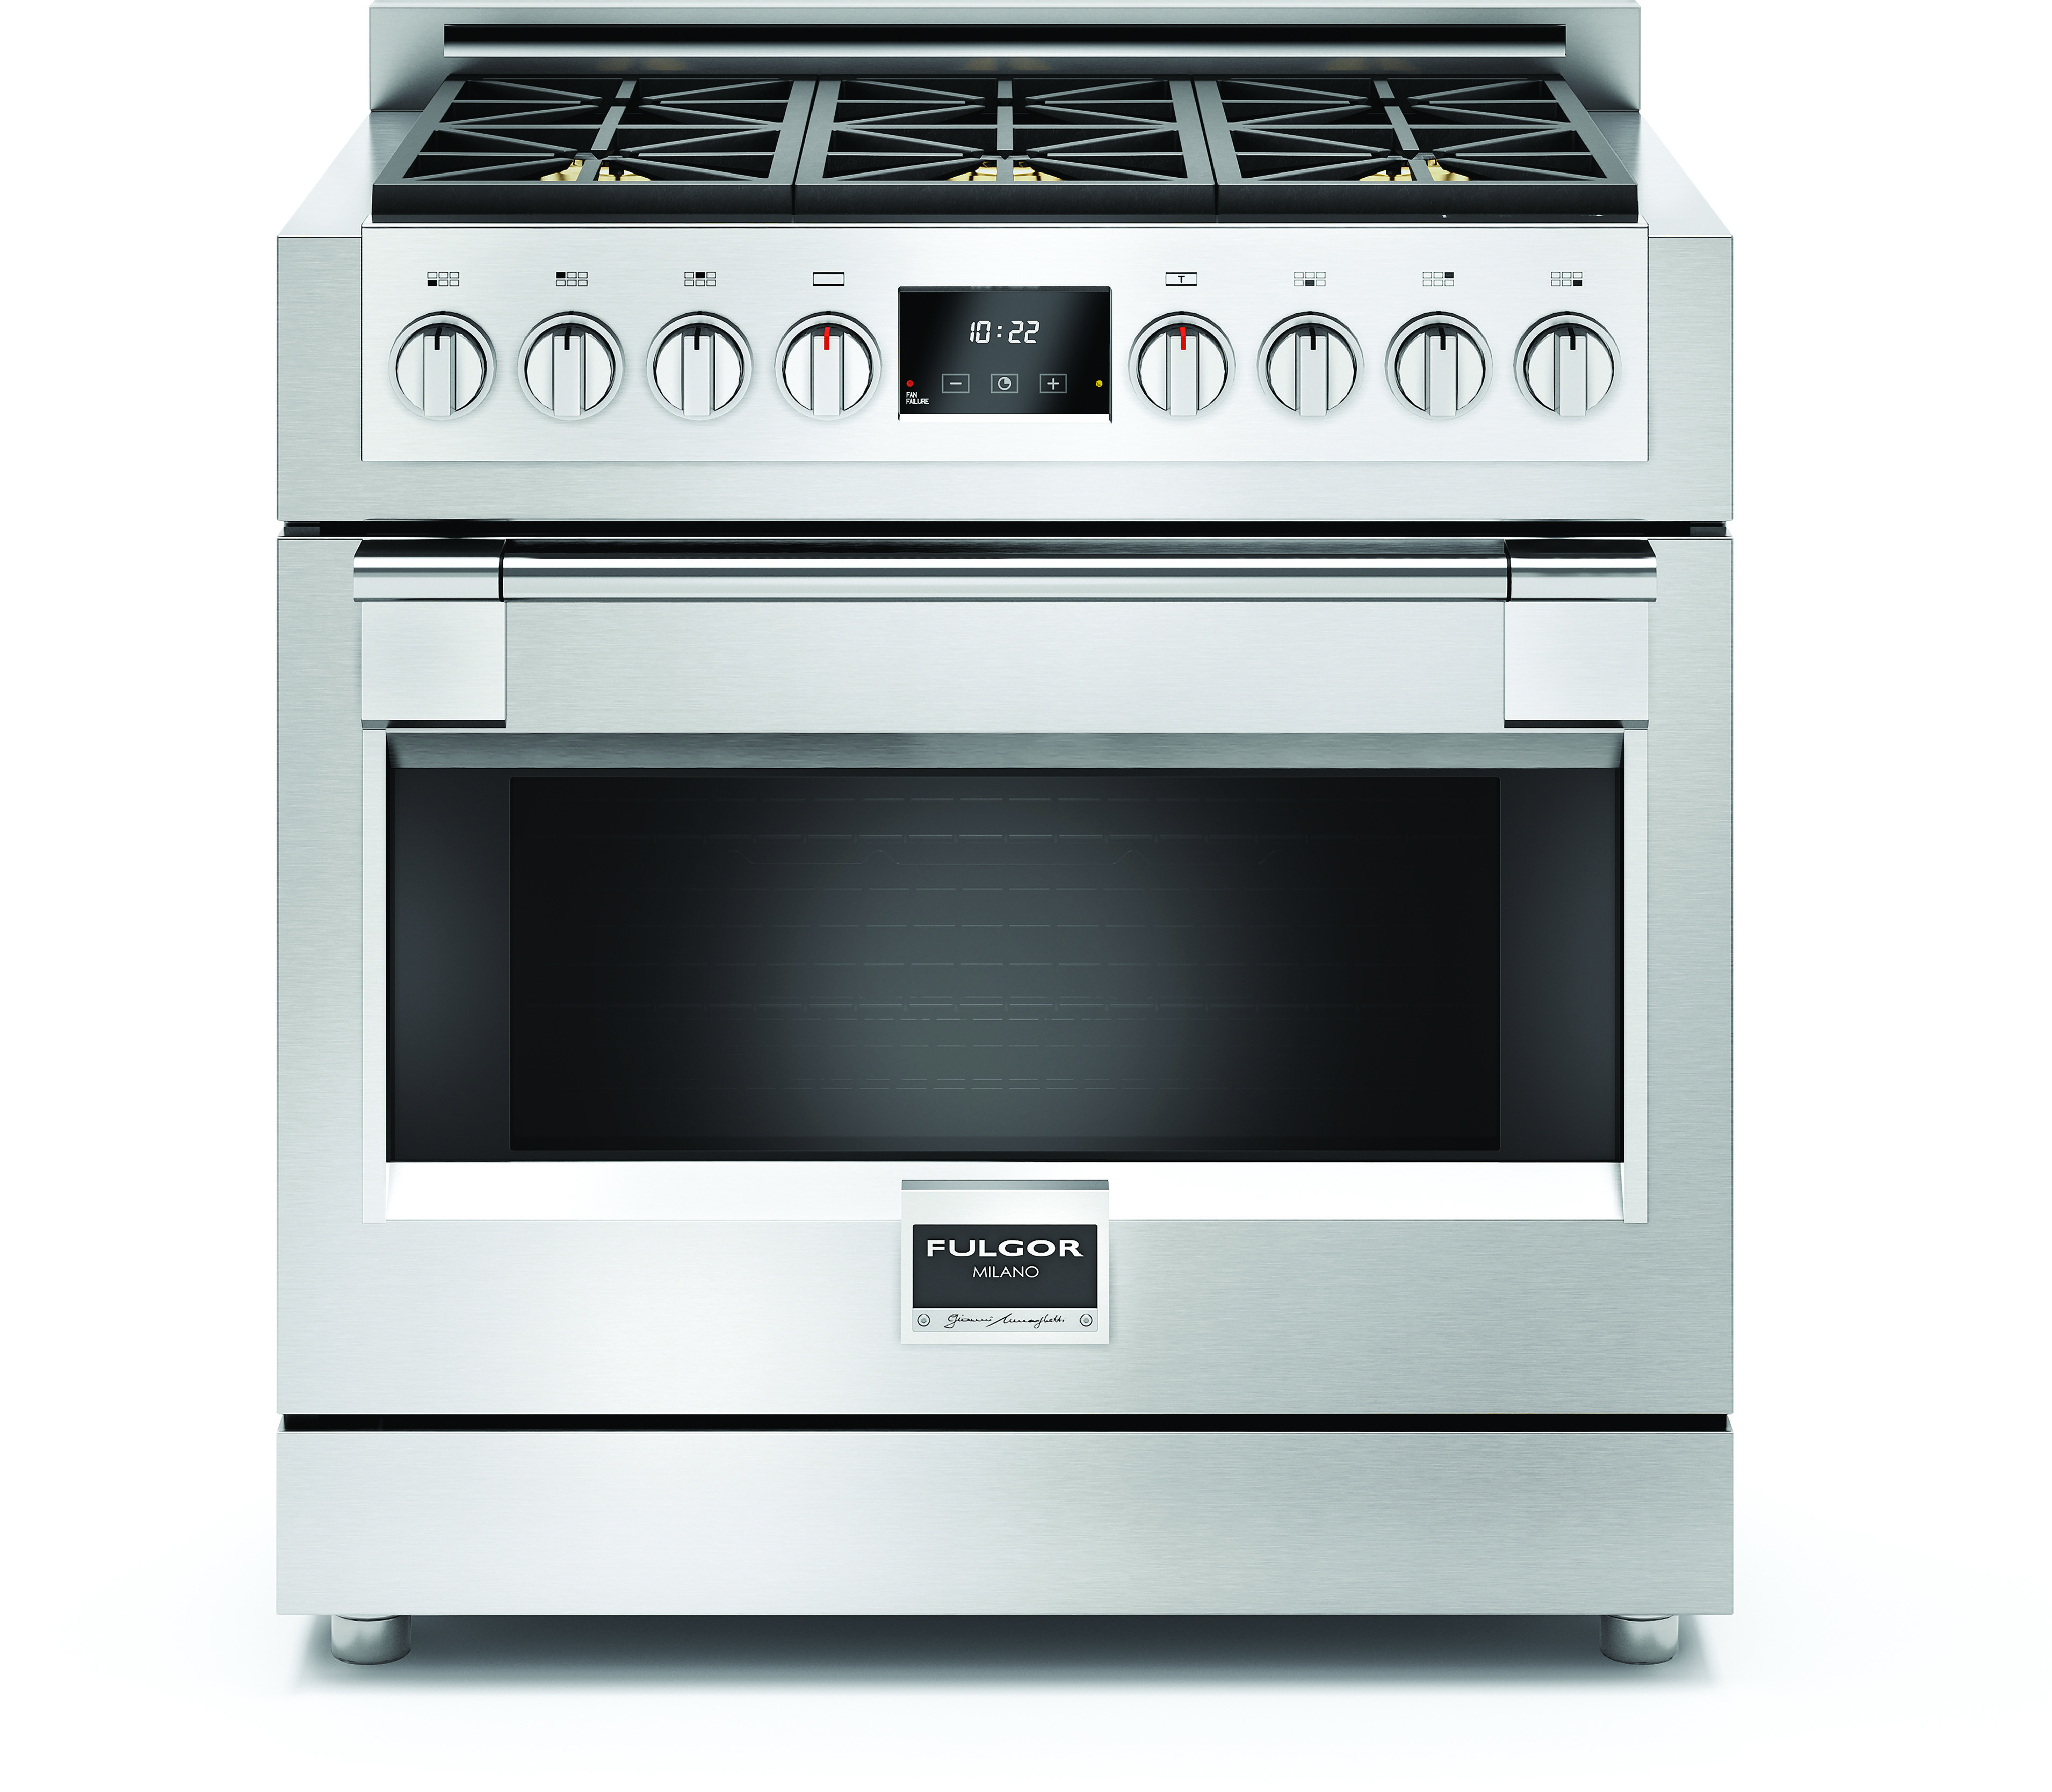 Fulgor Milano F6PGR366S1 36 Inch Freestanding Gas Range with 6 18,000-BTU  Burners, 5.2 cu. ft. Dual Convection Oven, Full Extension Telescopic Rack,  ...